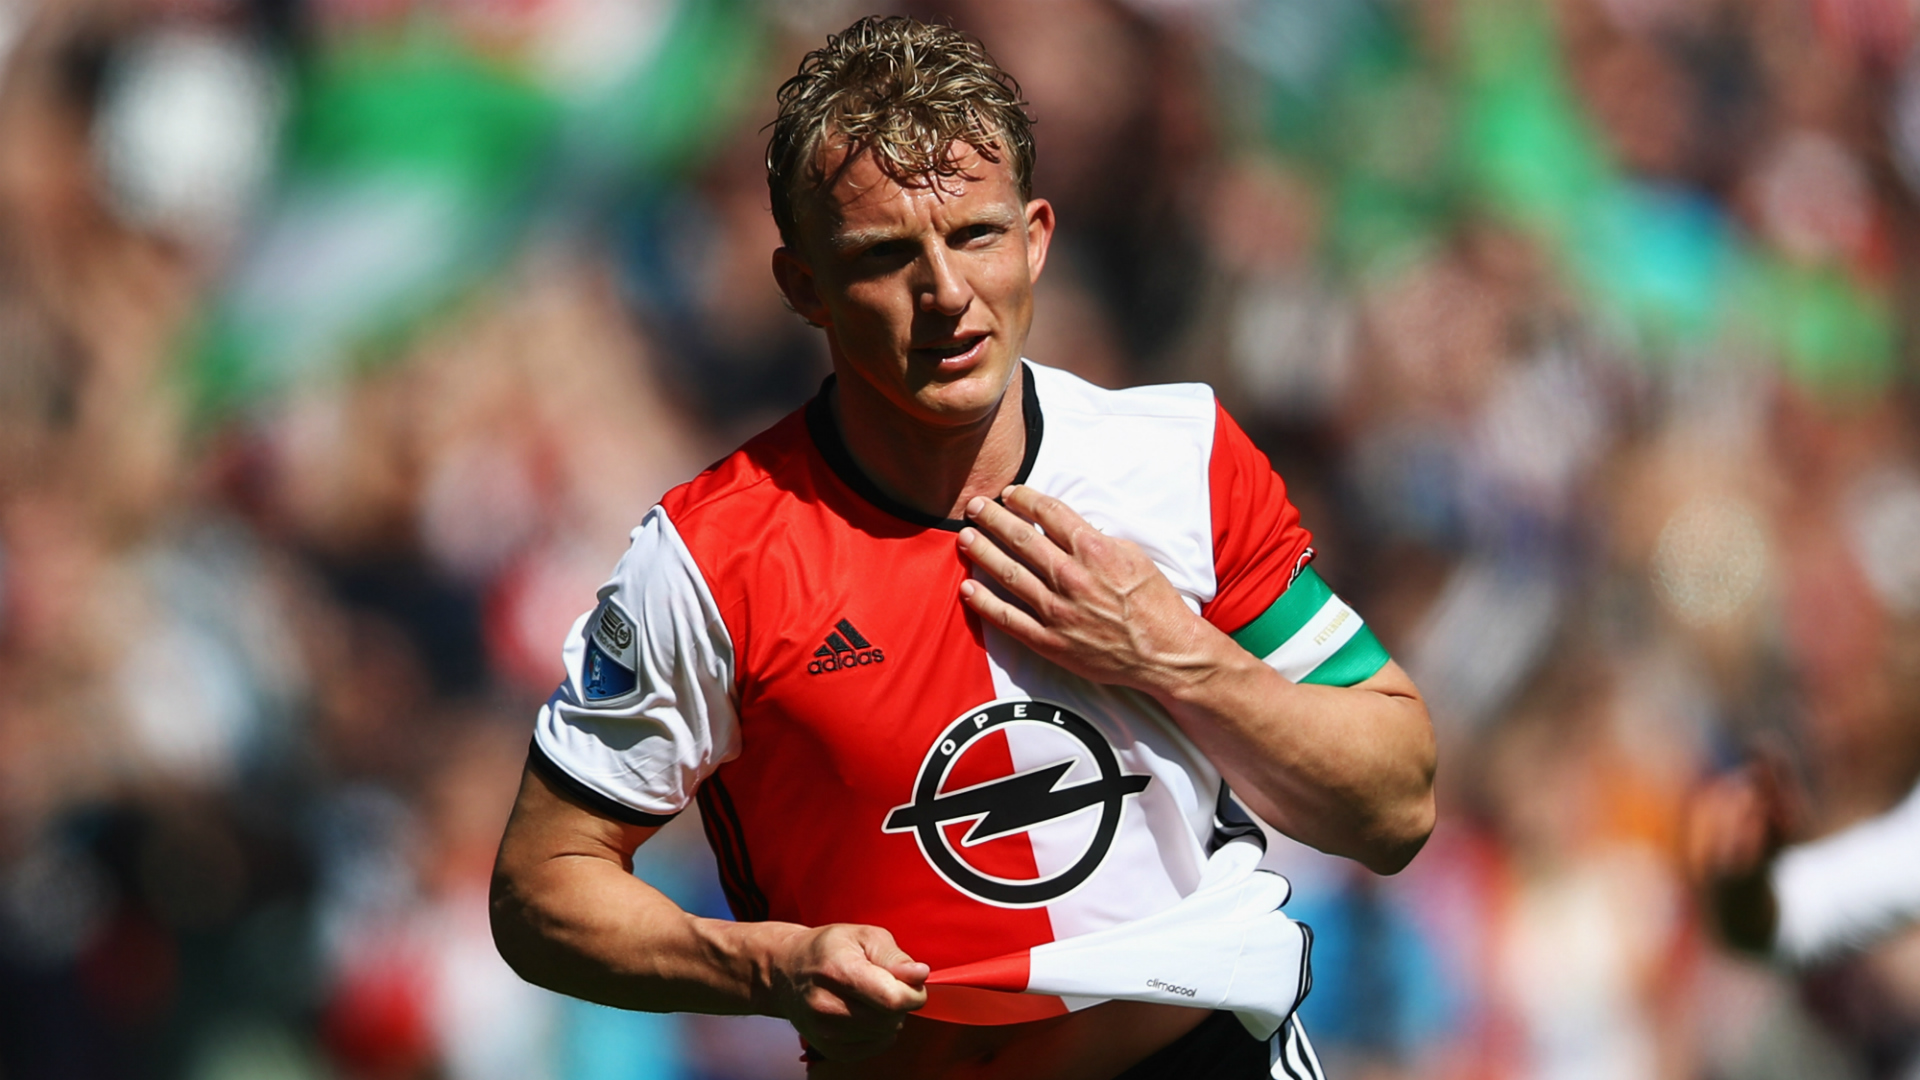 Aussie keeper claims Eredivisie title with Feyenoord